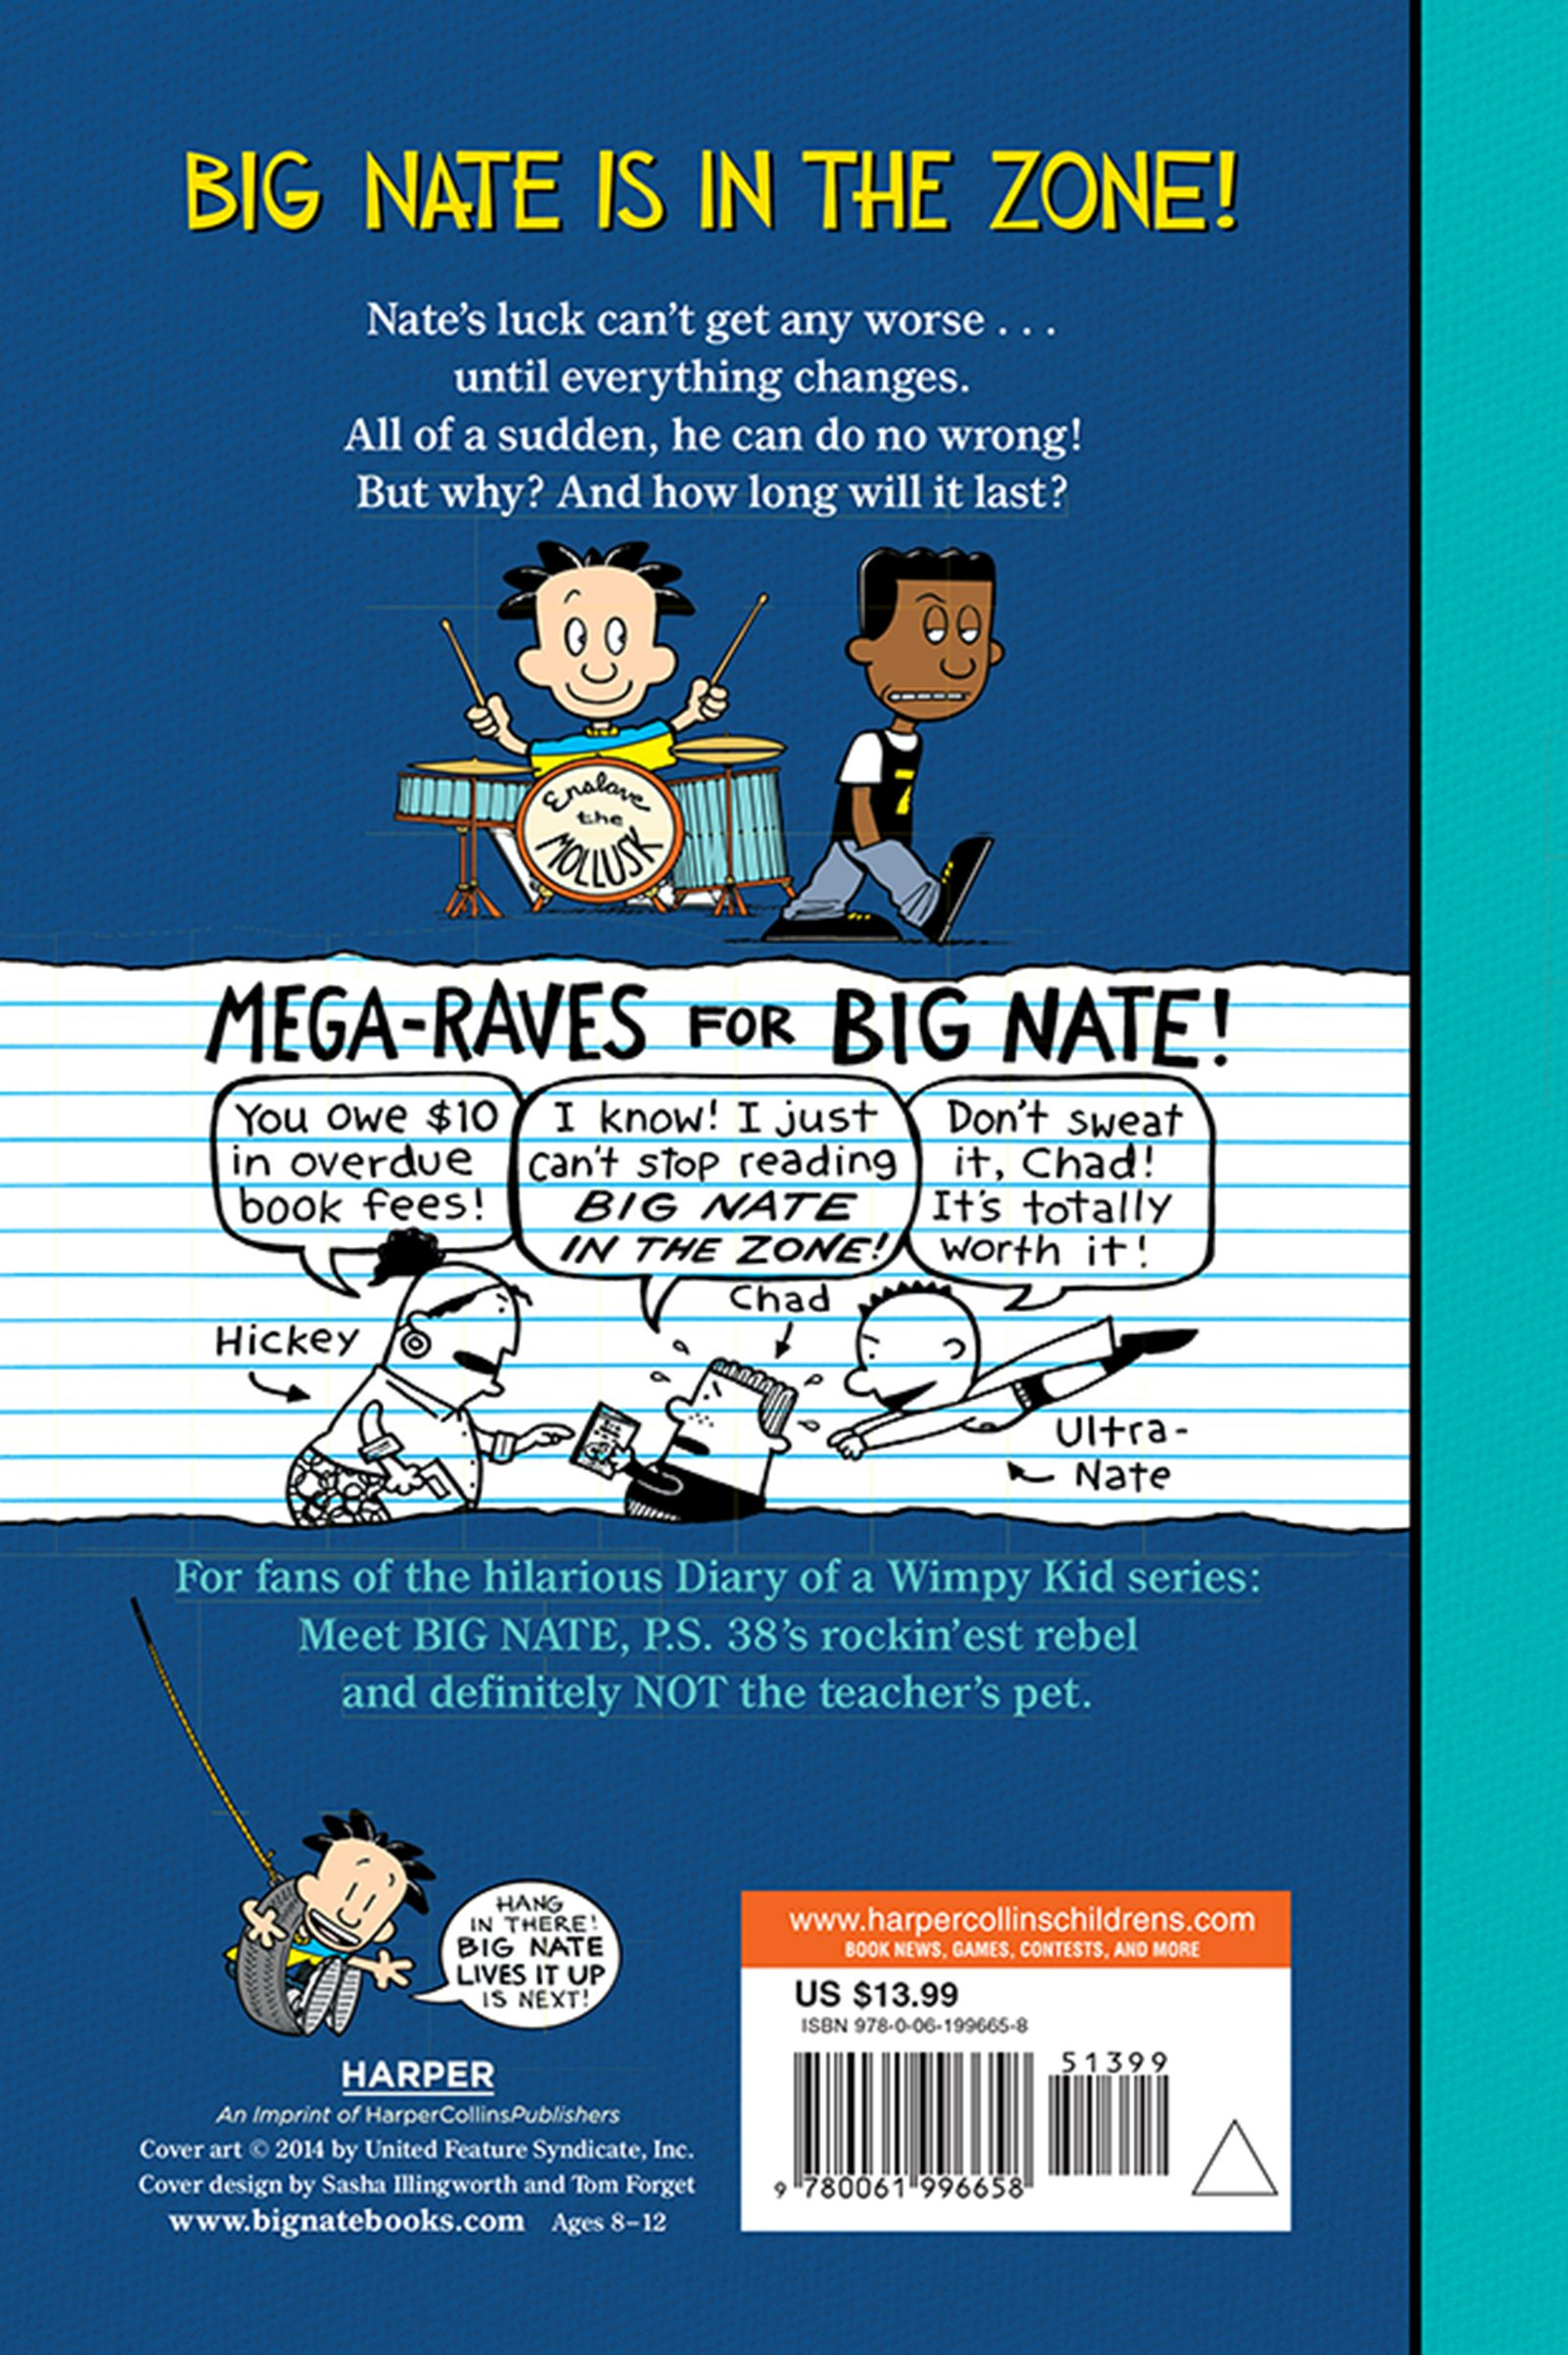 Big Nate: In the Zone by Harper Collins (Image #1)